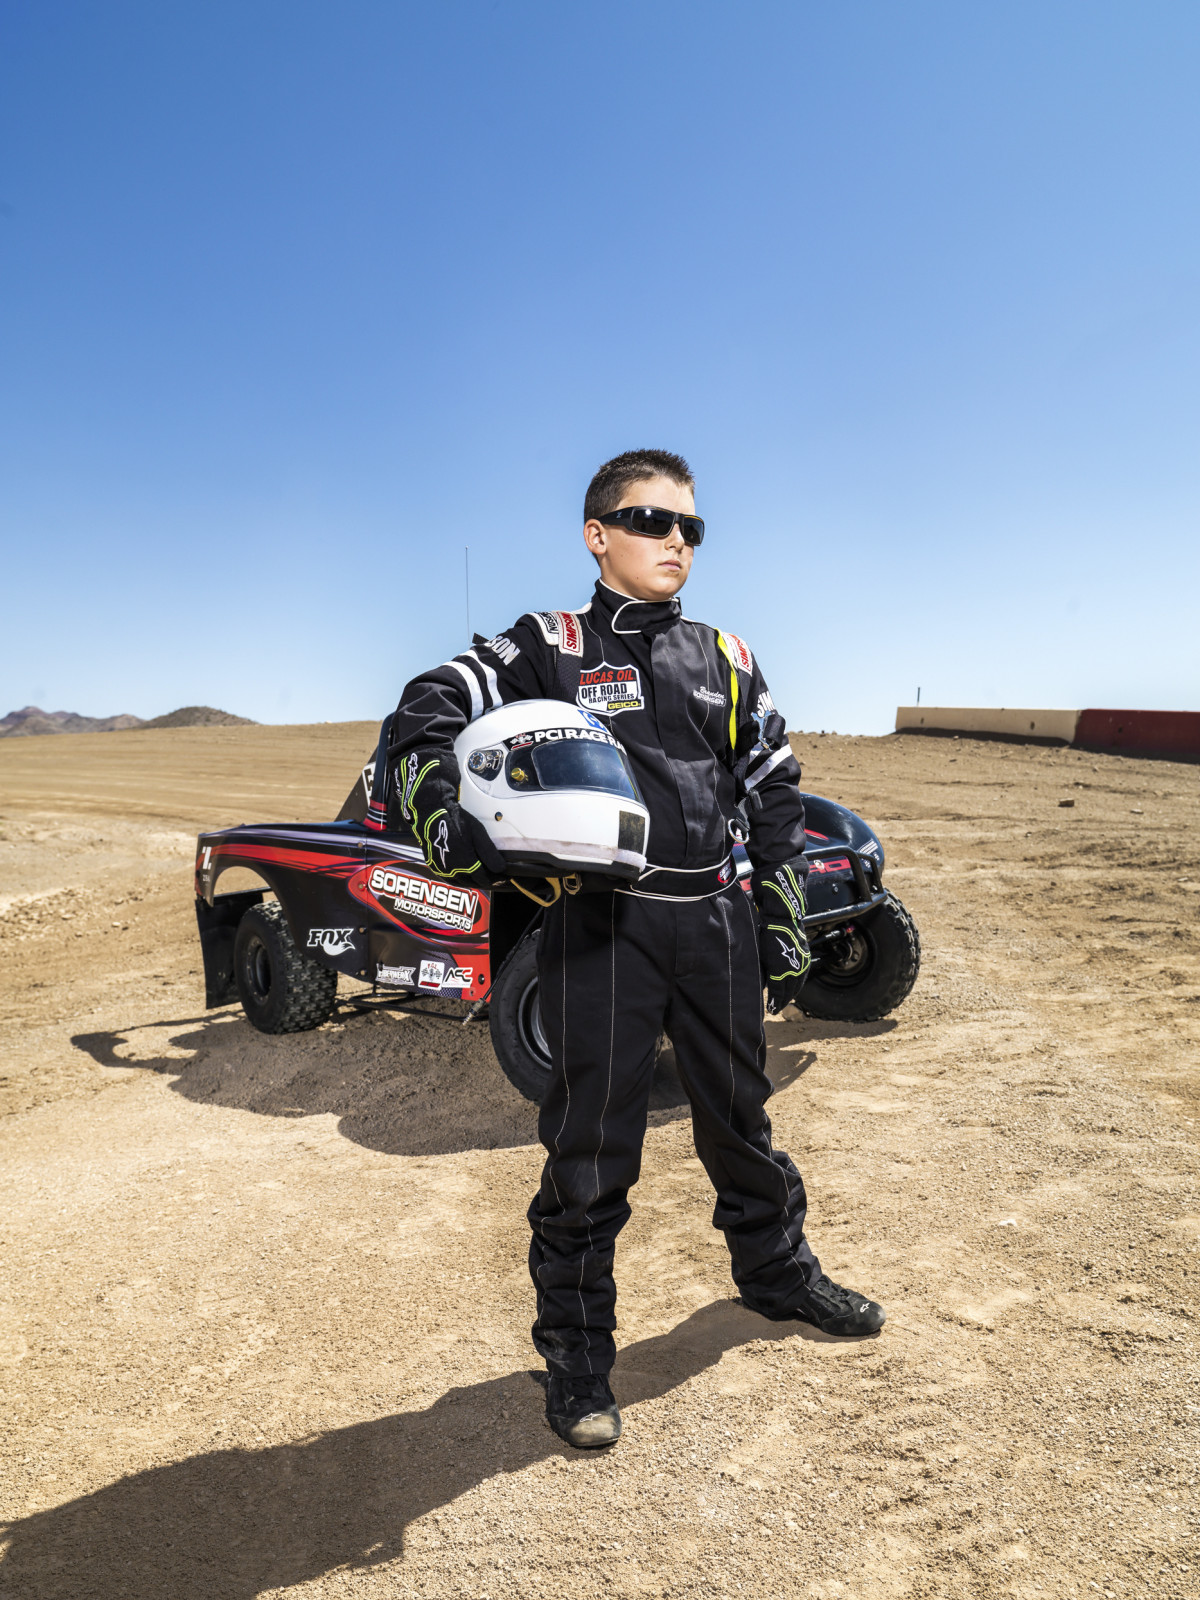 branden sorensen trophy kart photo